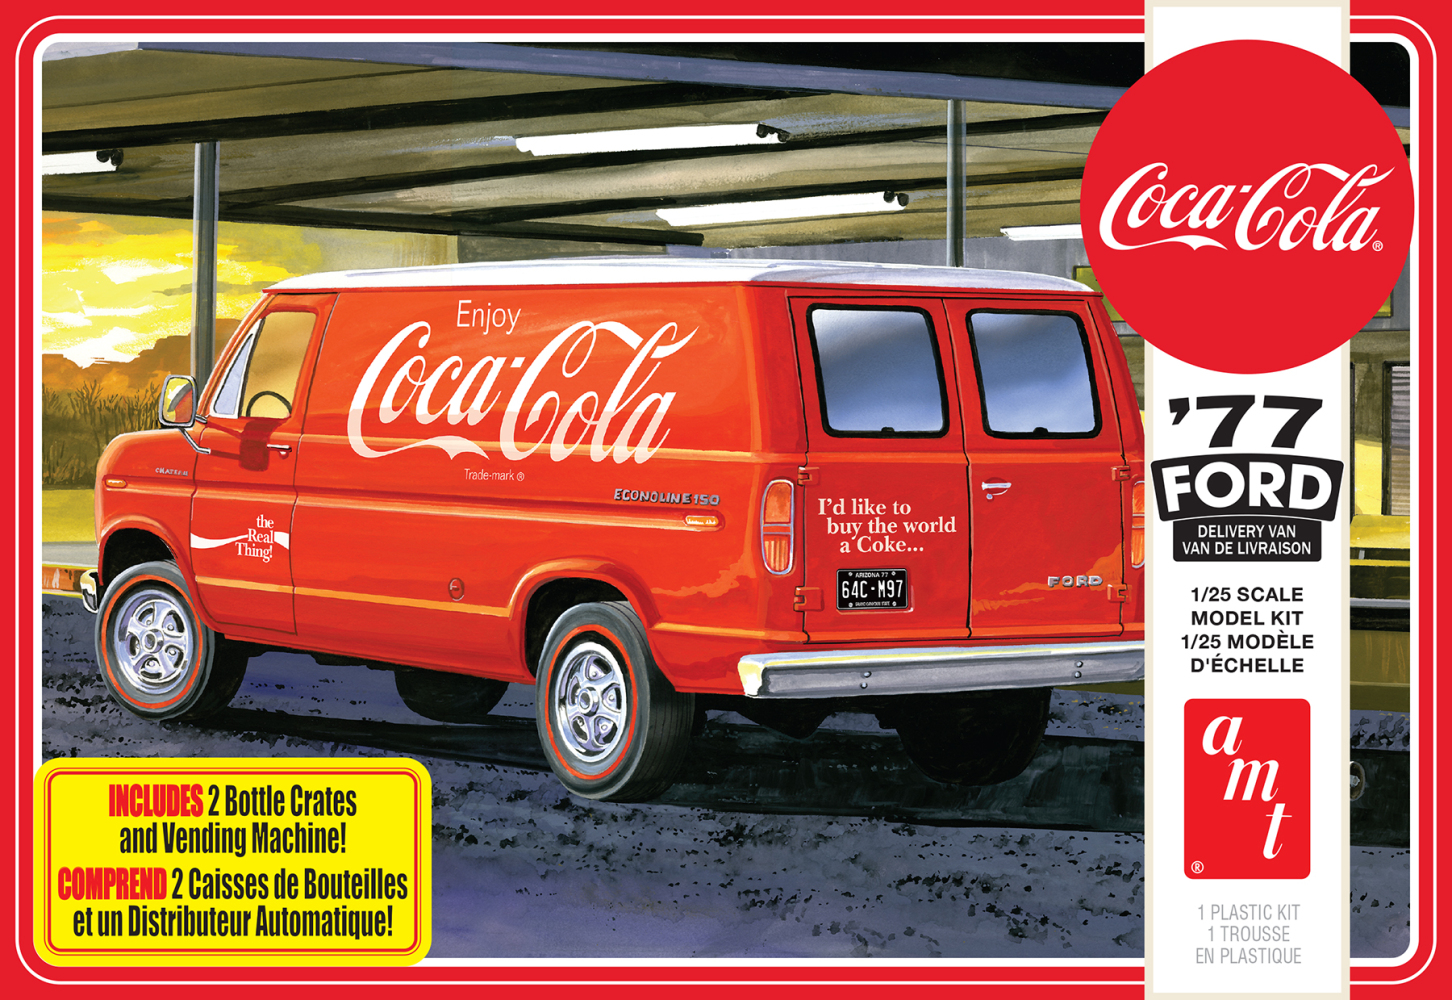 1977 Ford Van with Vending Machine (Coca-Cola)